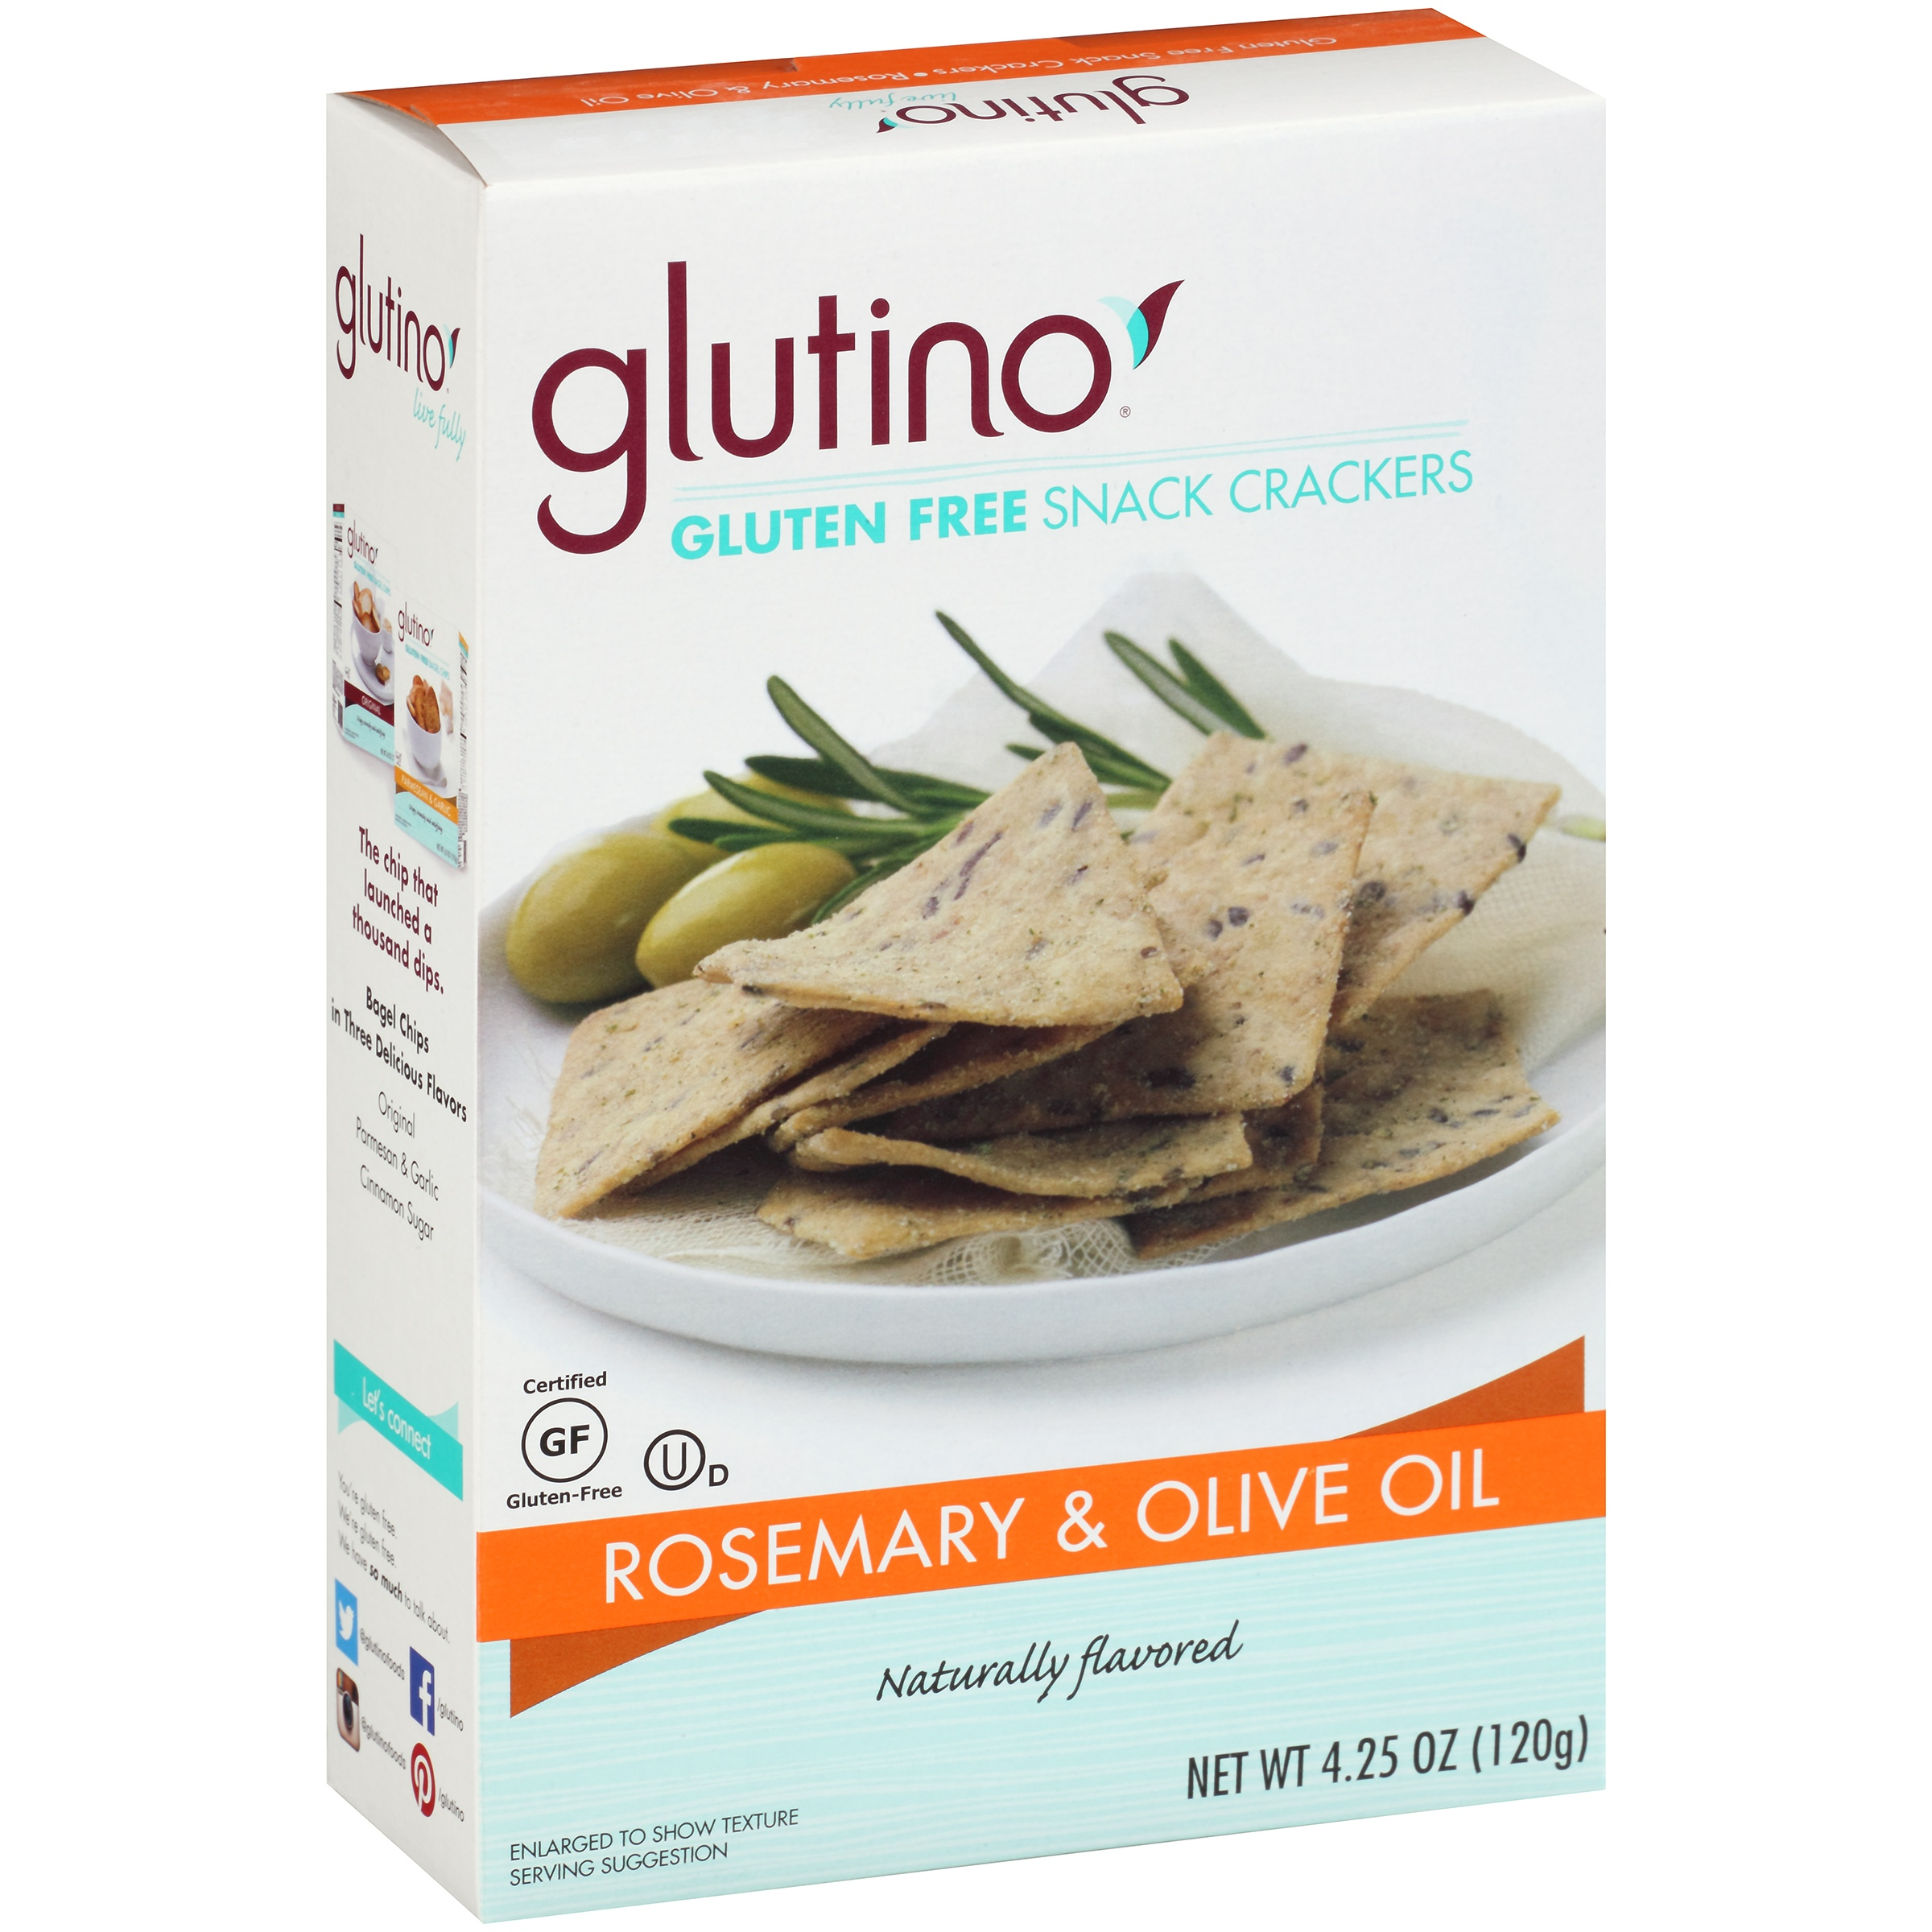 Glutino® Gluten Free Rosemary & Olive Oil Snack Crackers 4.25 oz. Box